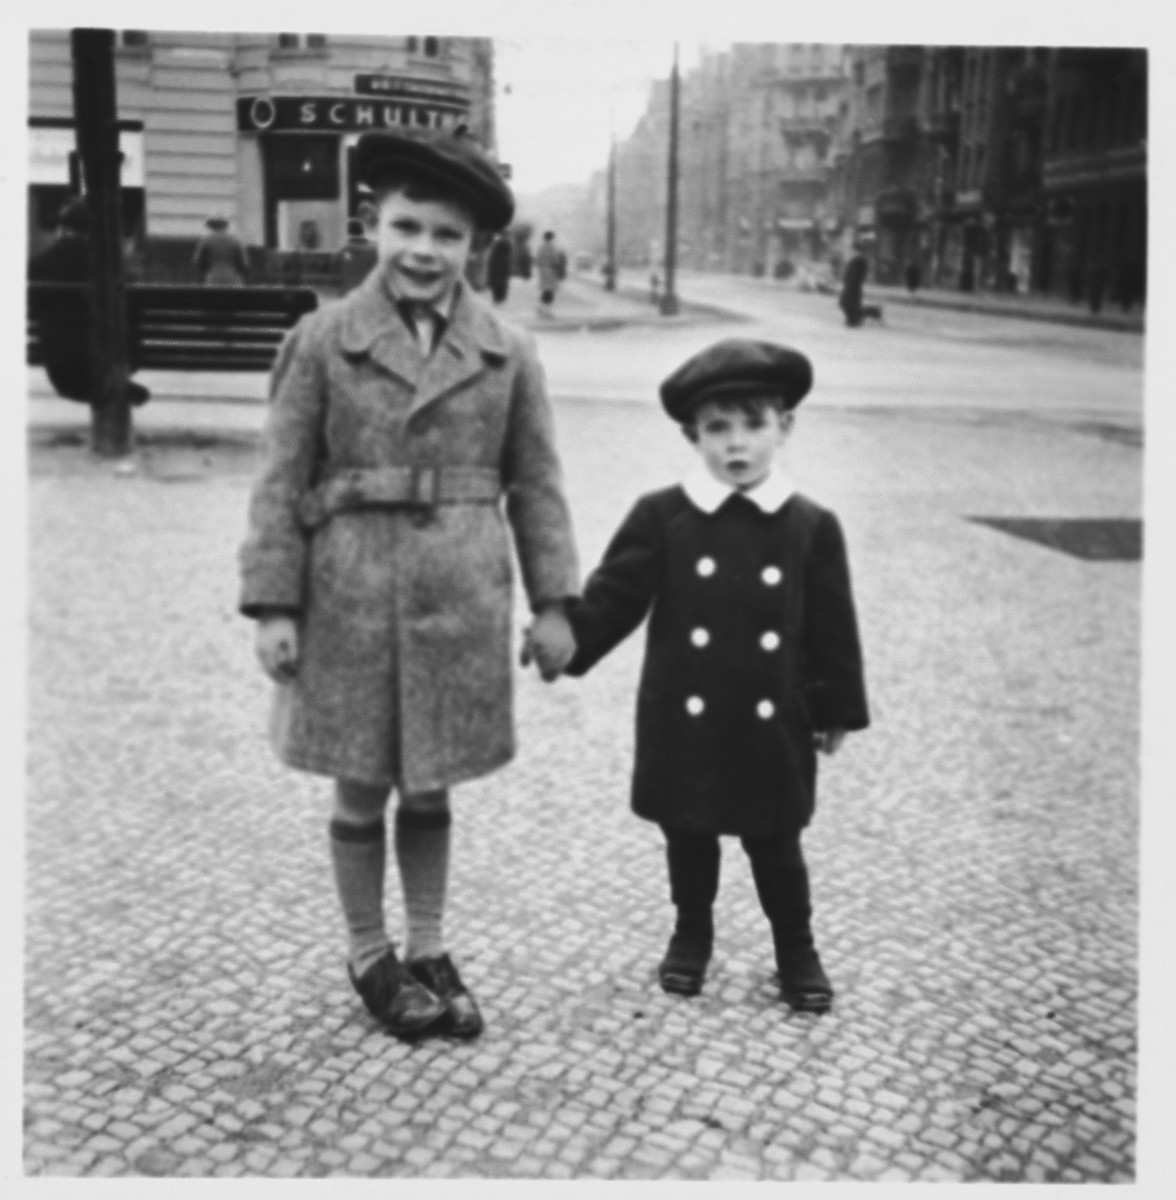 Ralf Harpuder and his older cousin Peter pose on a sidewalk in Berlin.  Peter later perished in the Holocaust.